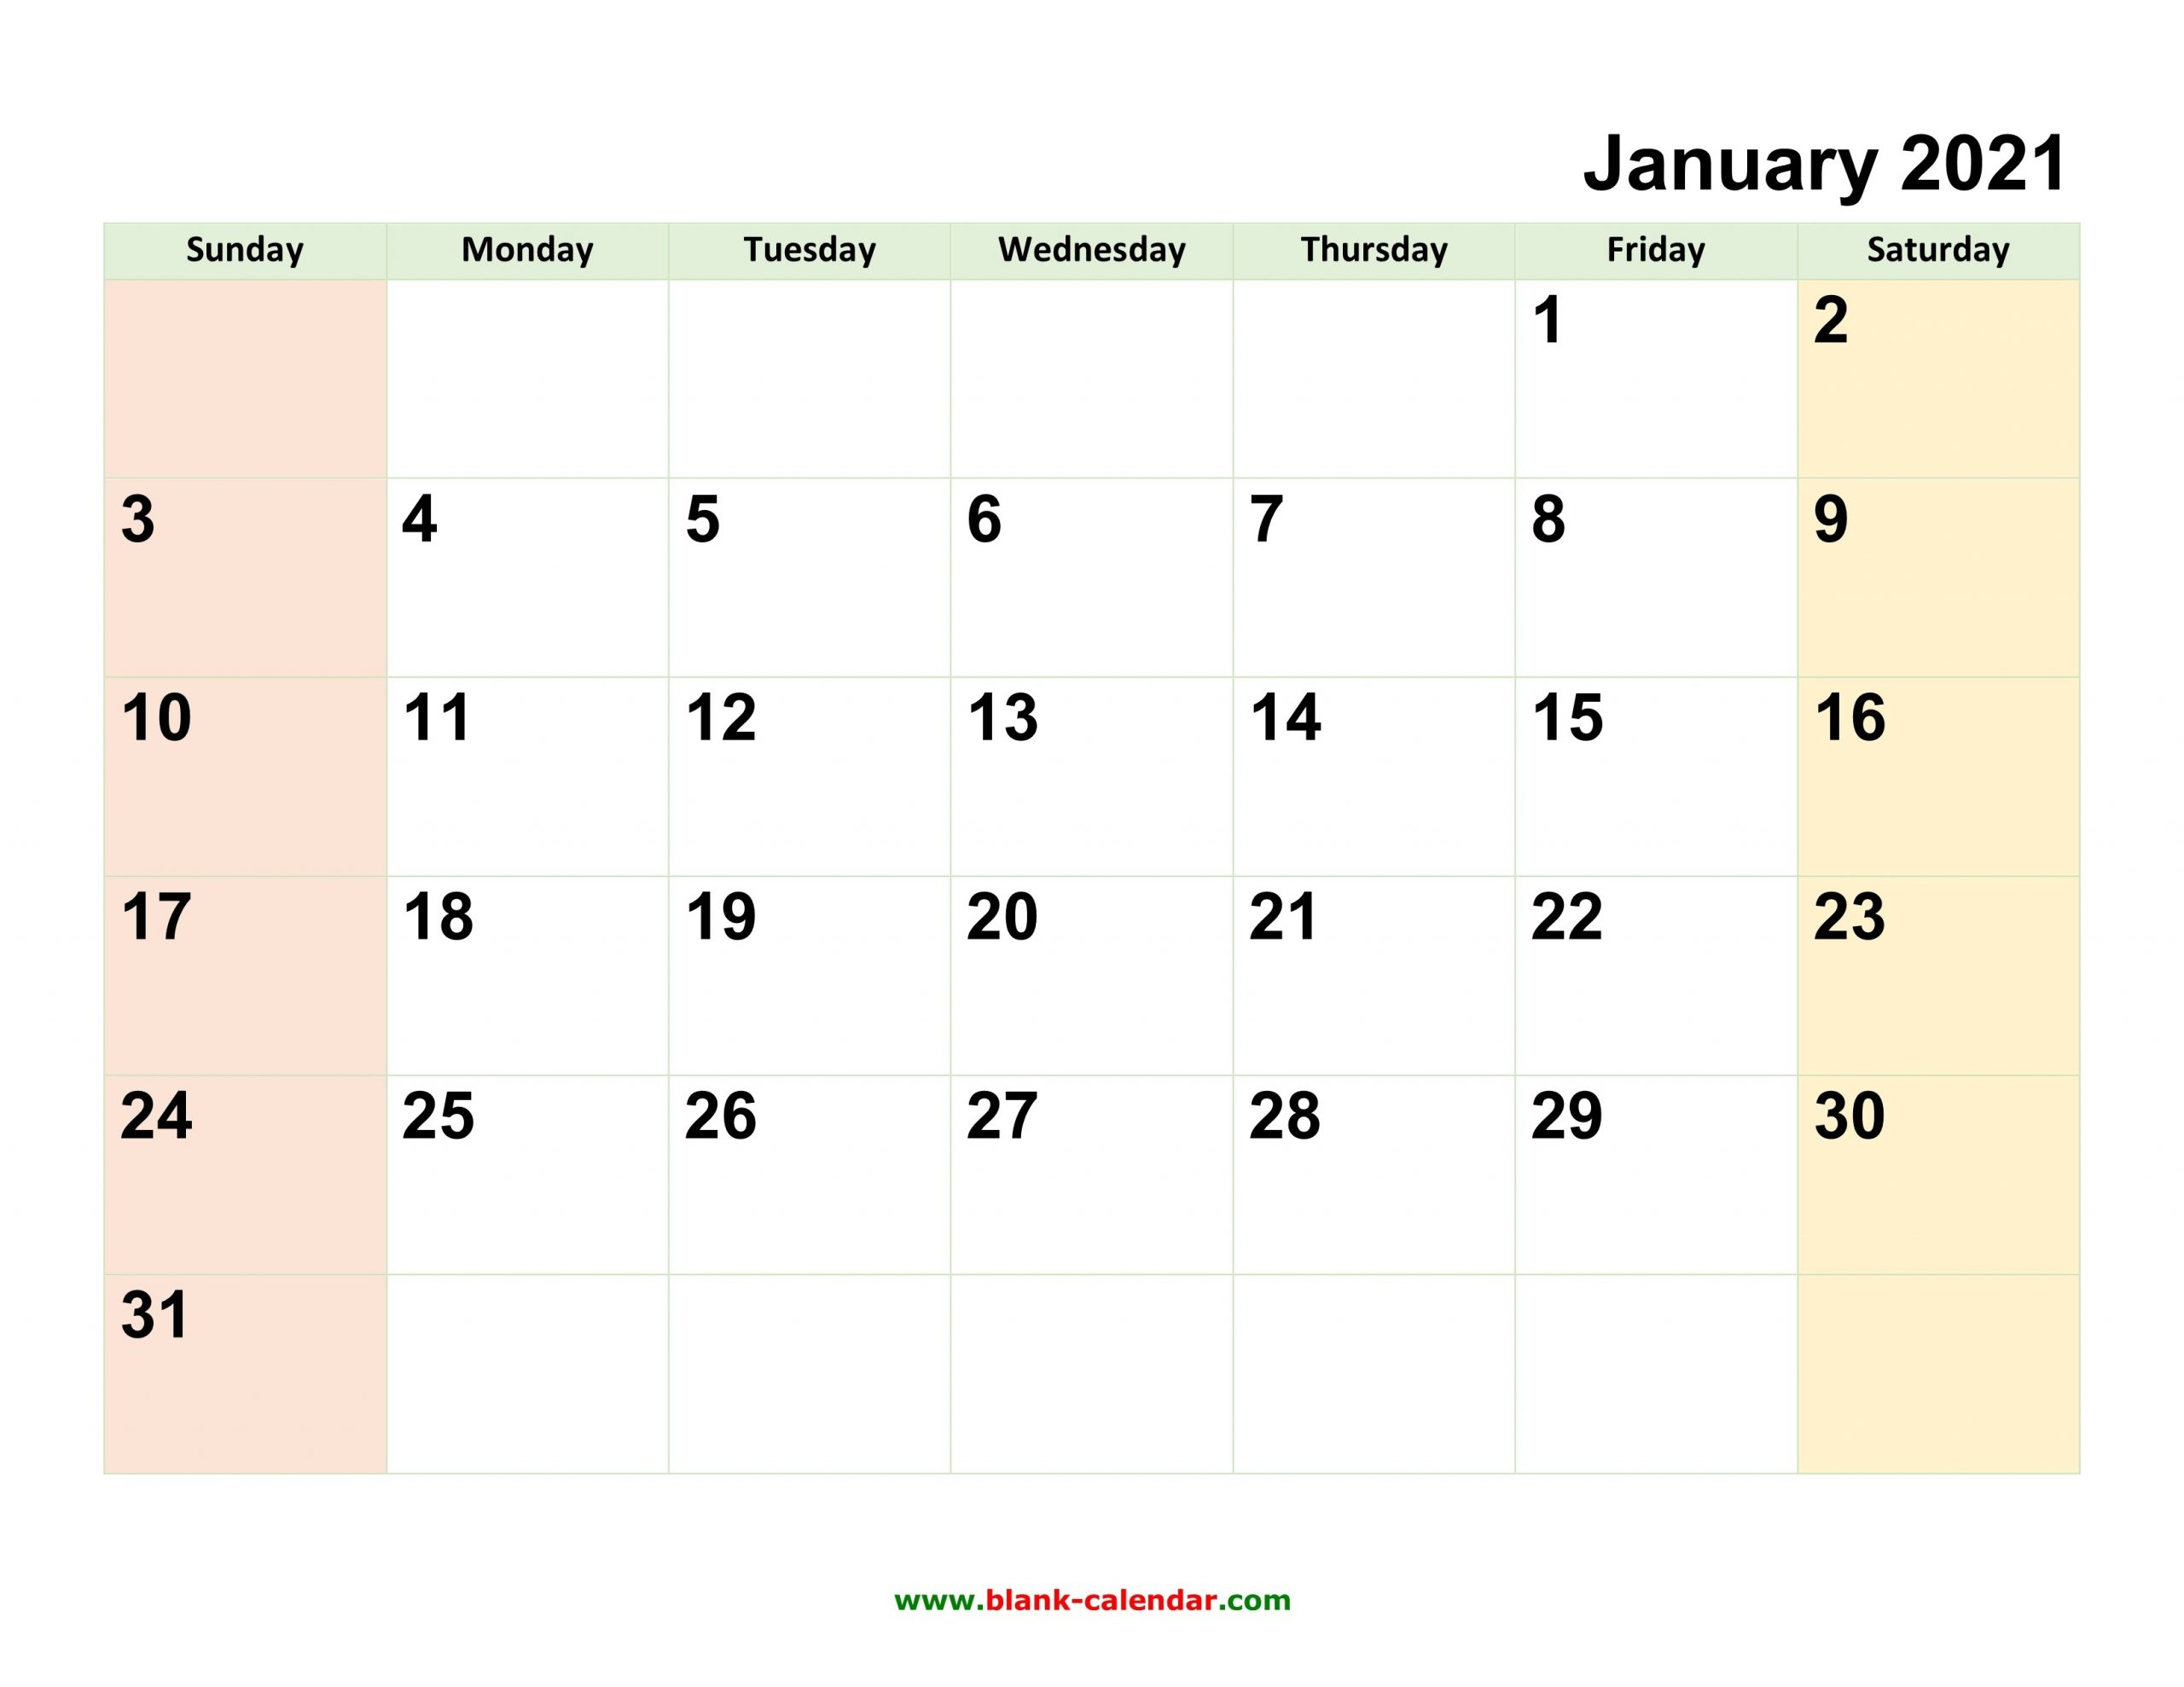 Monthly Calendar 2021 | Free Download, Editable And Printable-Fill In Calendar For 2021